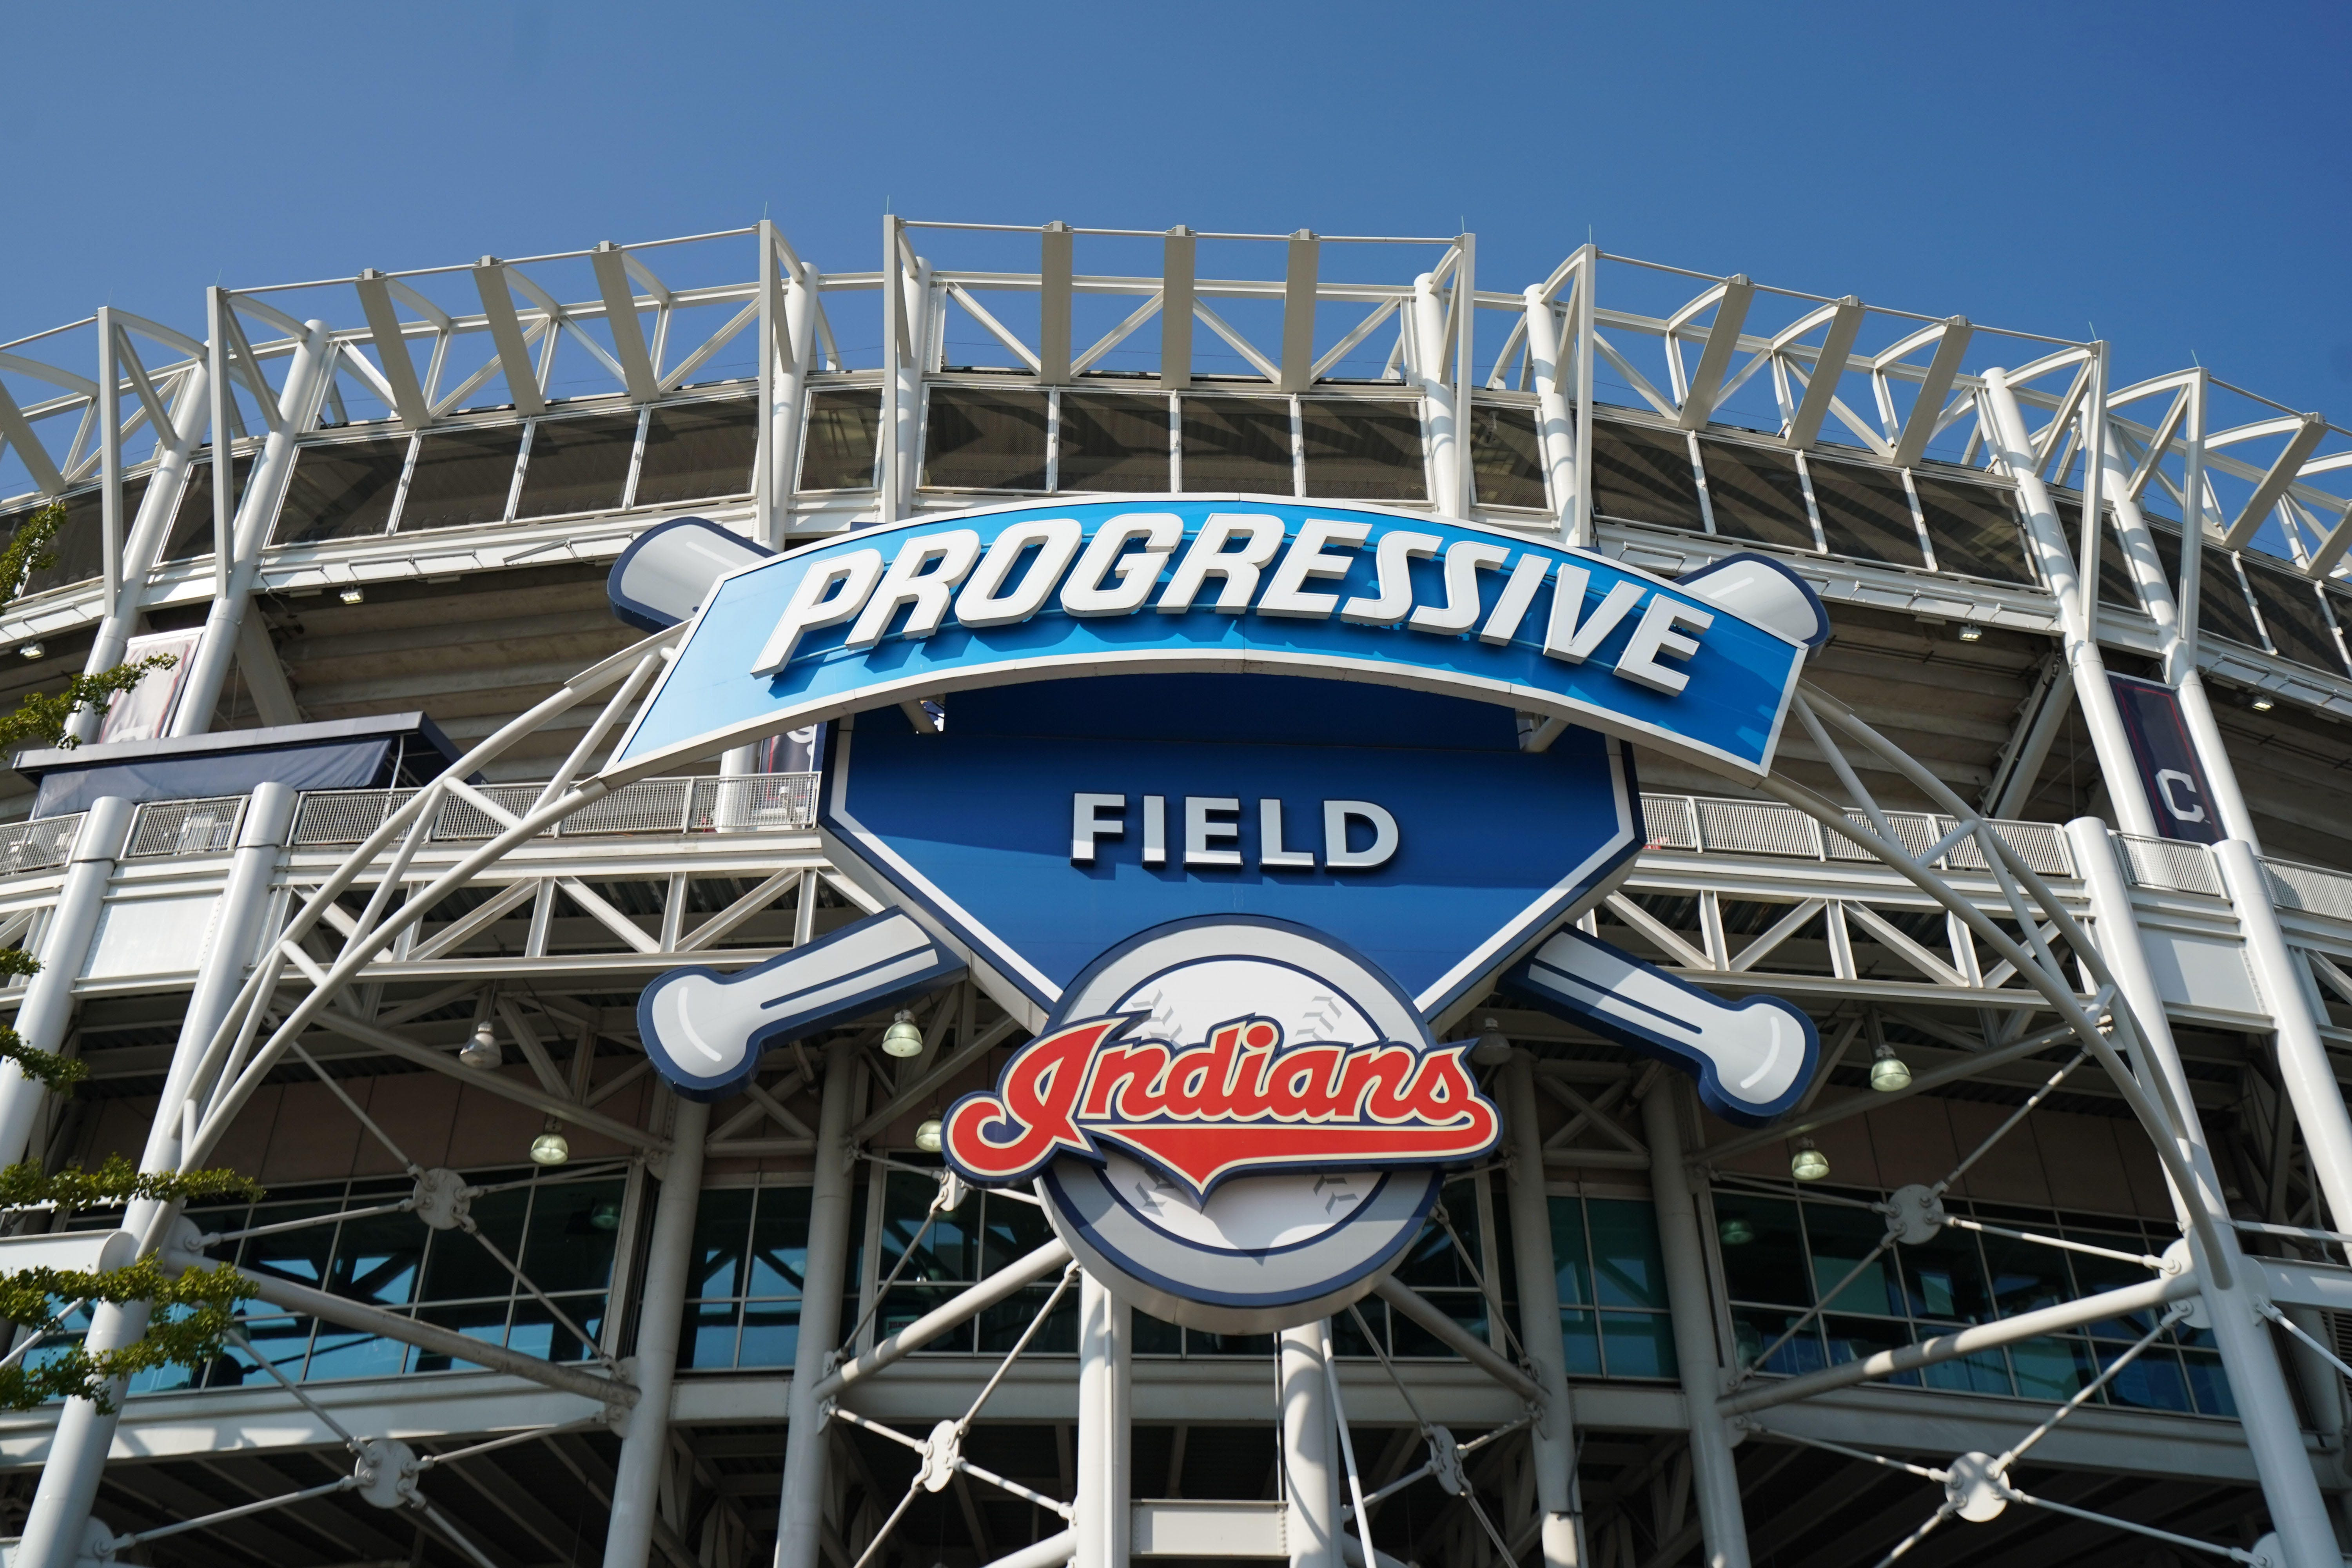 Cleveland Indians looking to 'determine best path forward with regard to our team name'